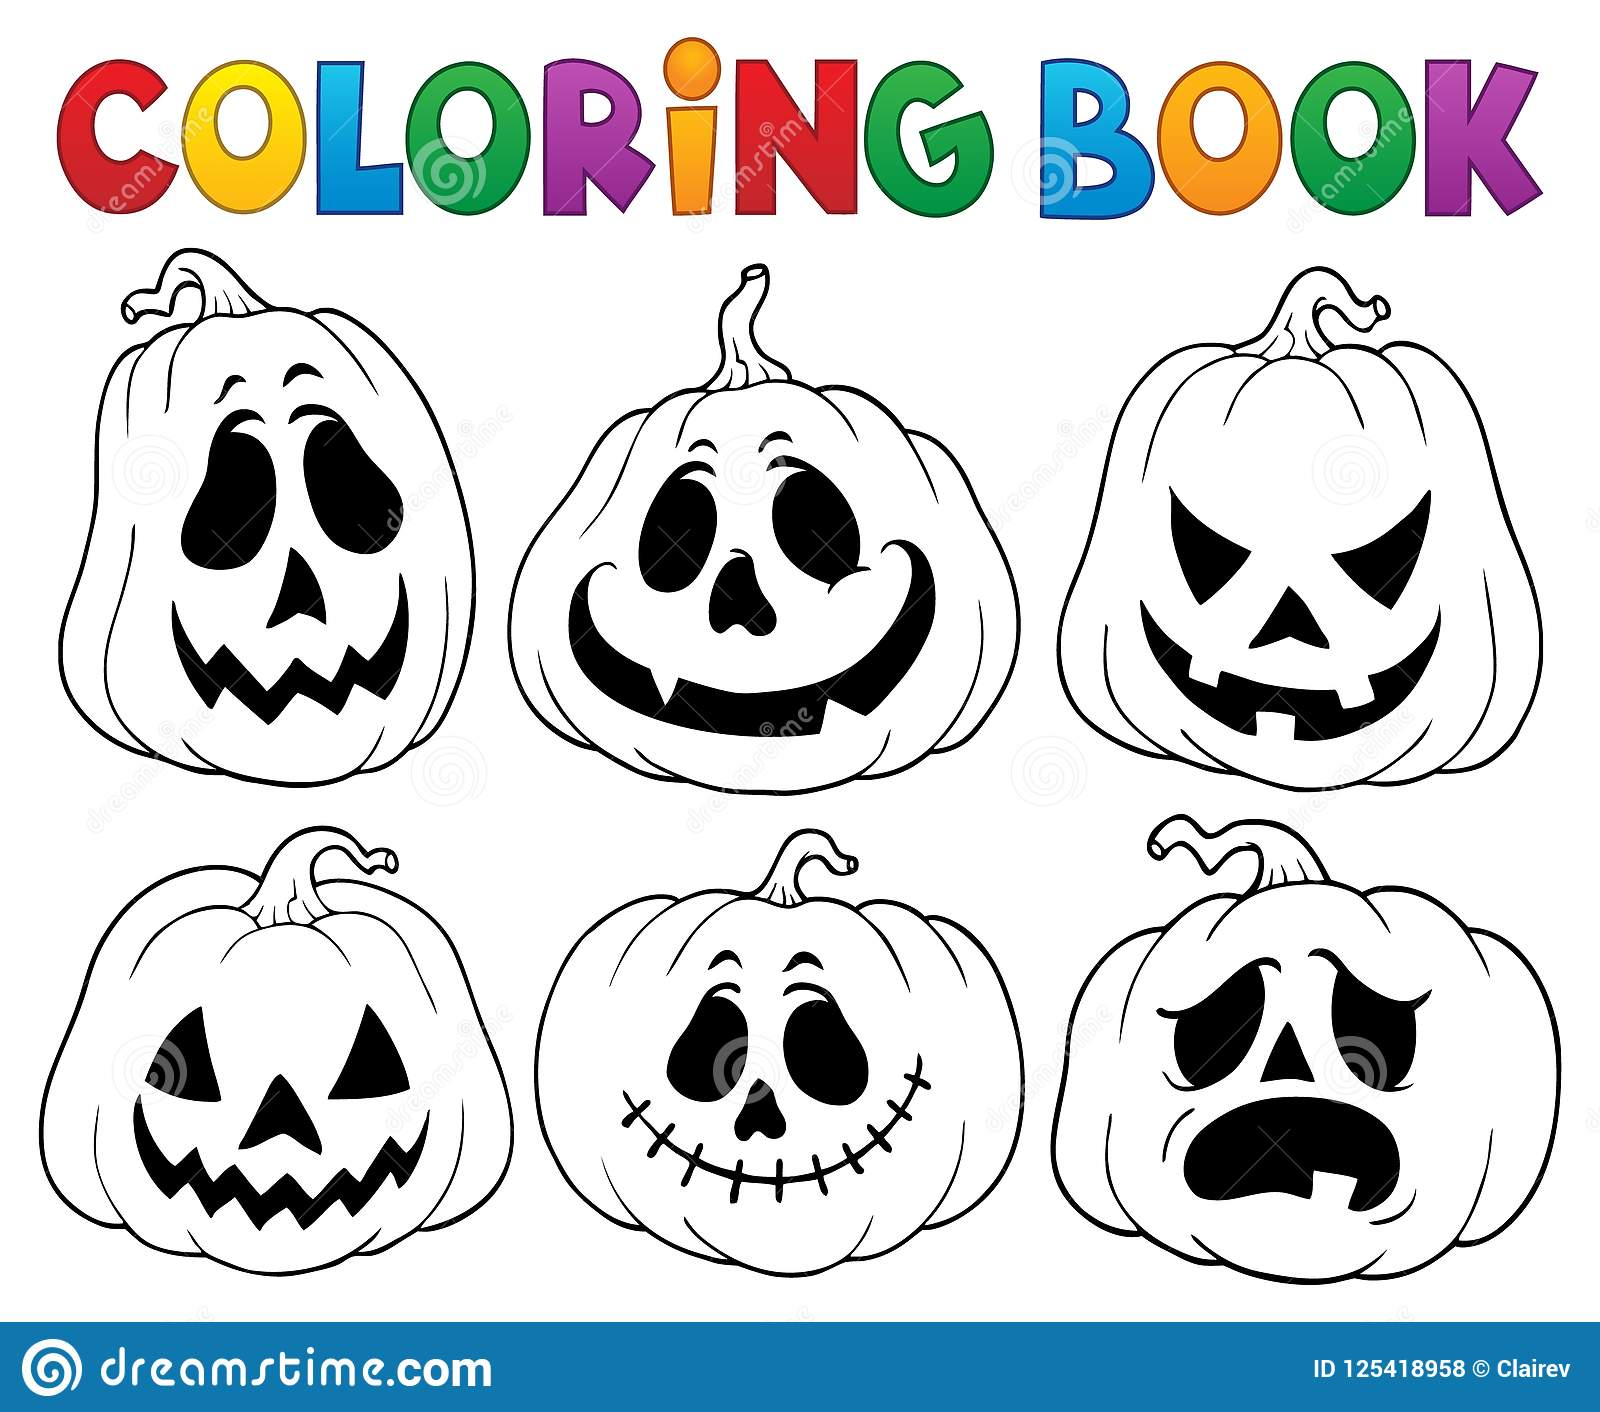 Coloring book with Halloween pumpkins 3